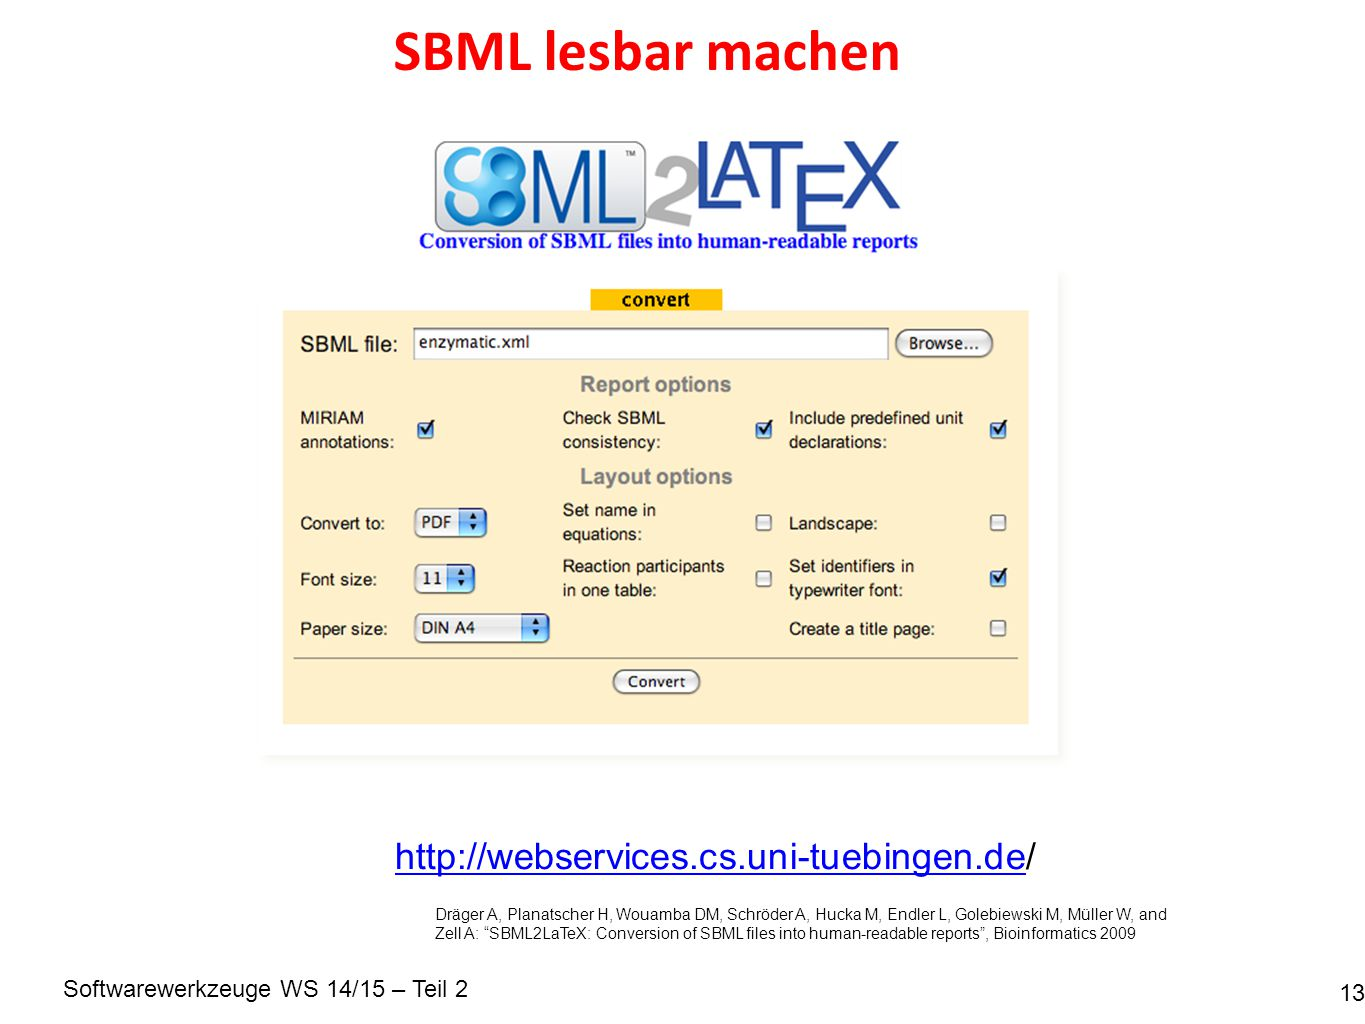 Softwarewerkzeuge WS 14/15 – Teil 2 SBML lesbar machen 13 http://webservices.cs.uni-tuebingen.dehttp://webservices.cs.uni-tuebingen.de/ Dräger A, Planatscher H, Wouamba DM, Schröder A, Hucka M, Endler L, Golebiewski M, Müller W, and Zell A: SBML2LaTeX: Conversion of SBML files into human-readable reports , Bioinformatics 2009